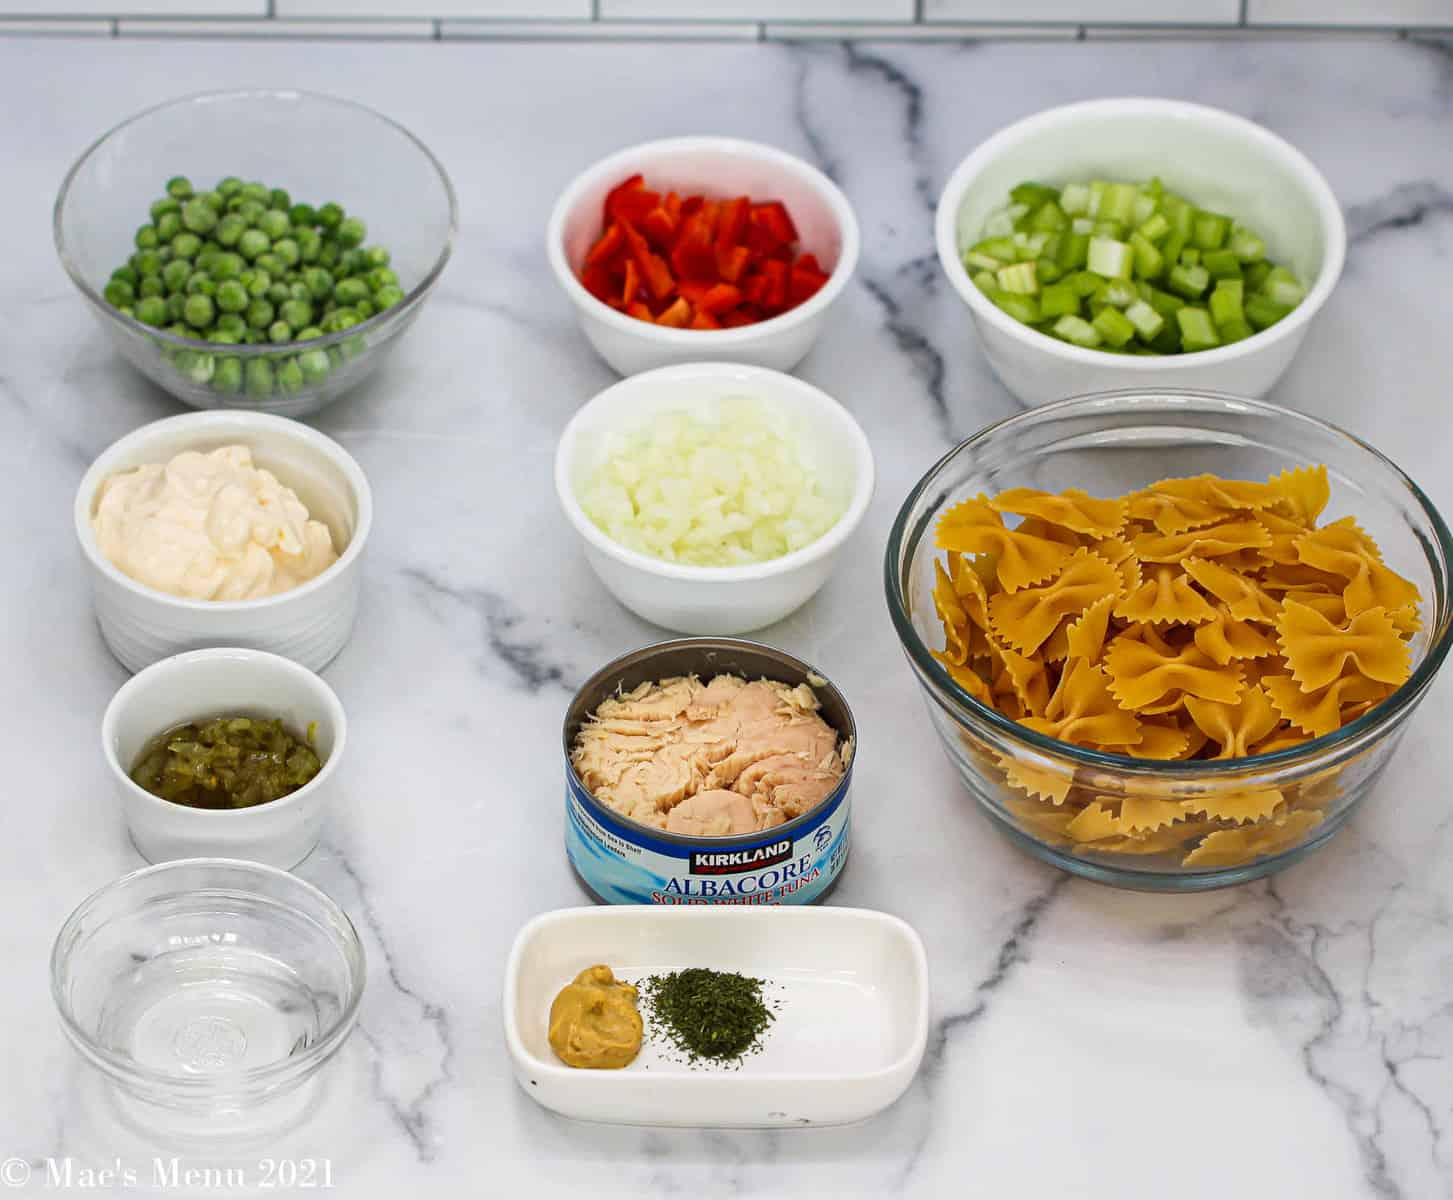 All the ingredients for this tuna macaroni salad